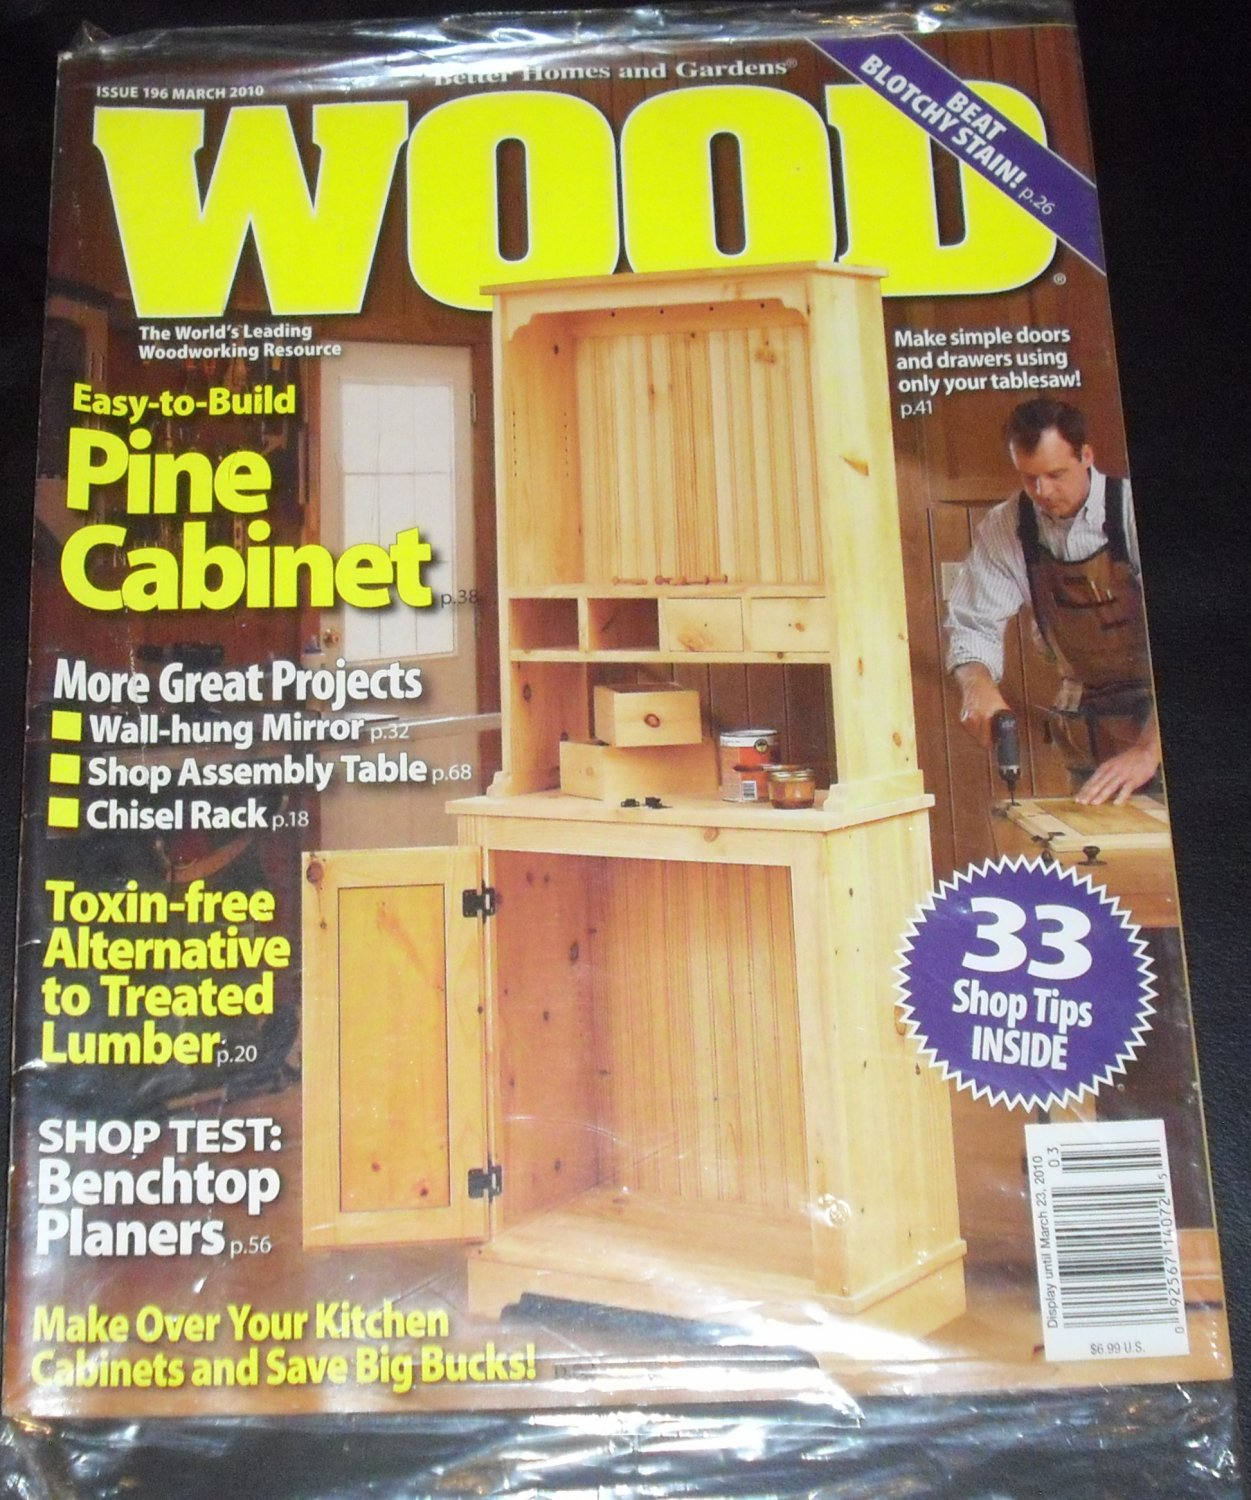 Better homes and gardens wood magazine march 2010 Better homes and gardens march